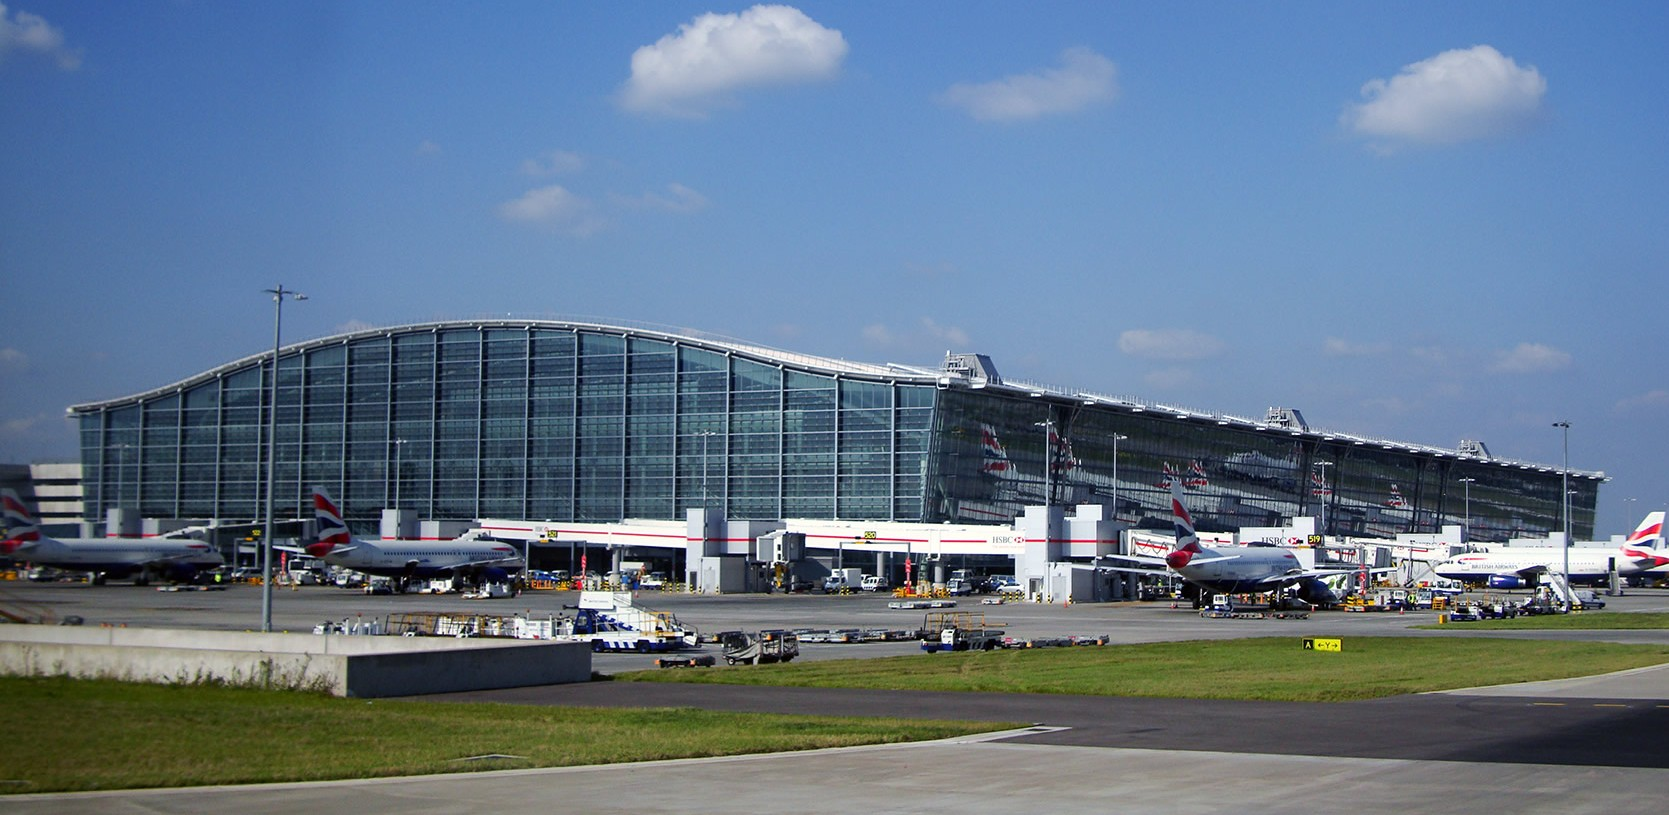 aeroporto-londra-heathrow